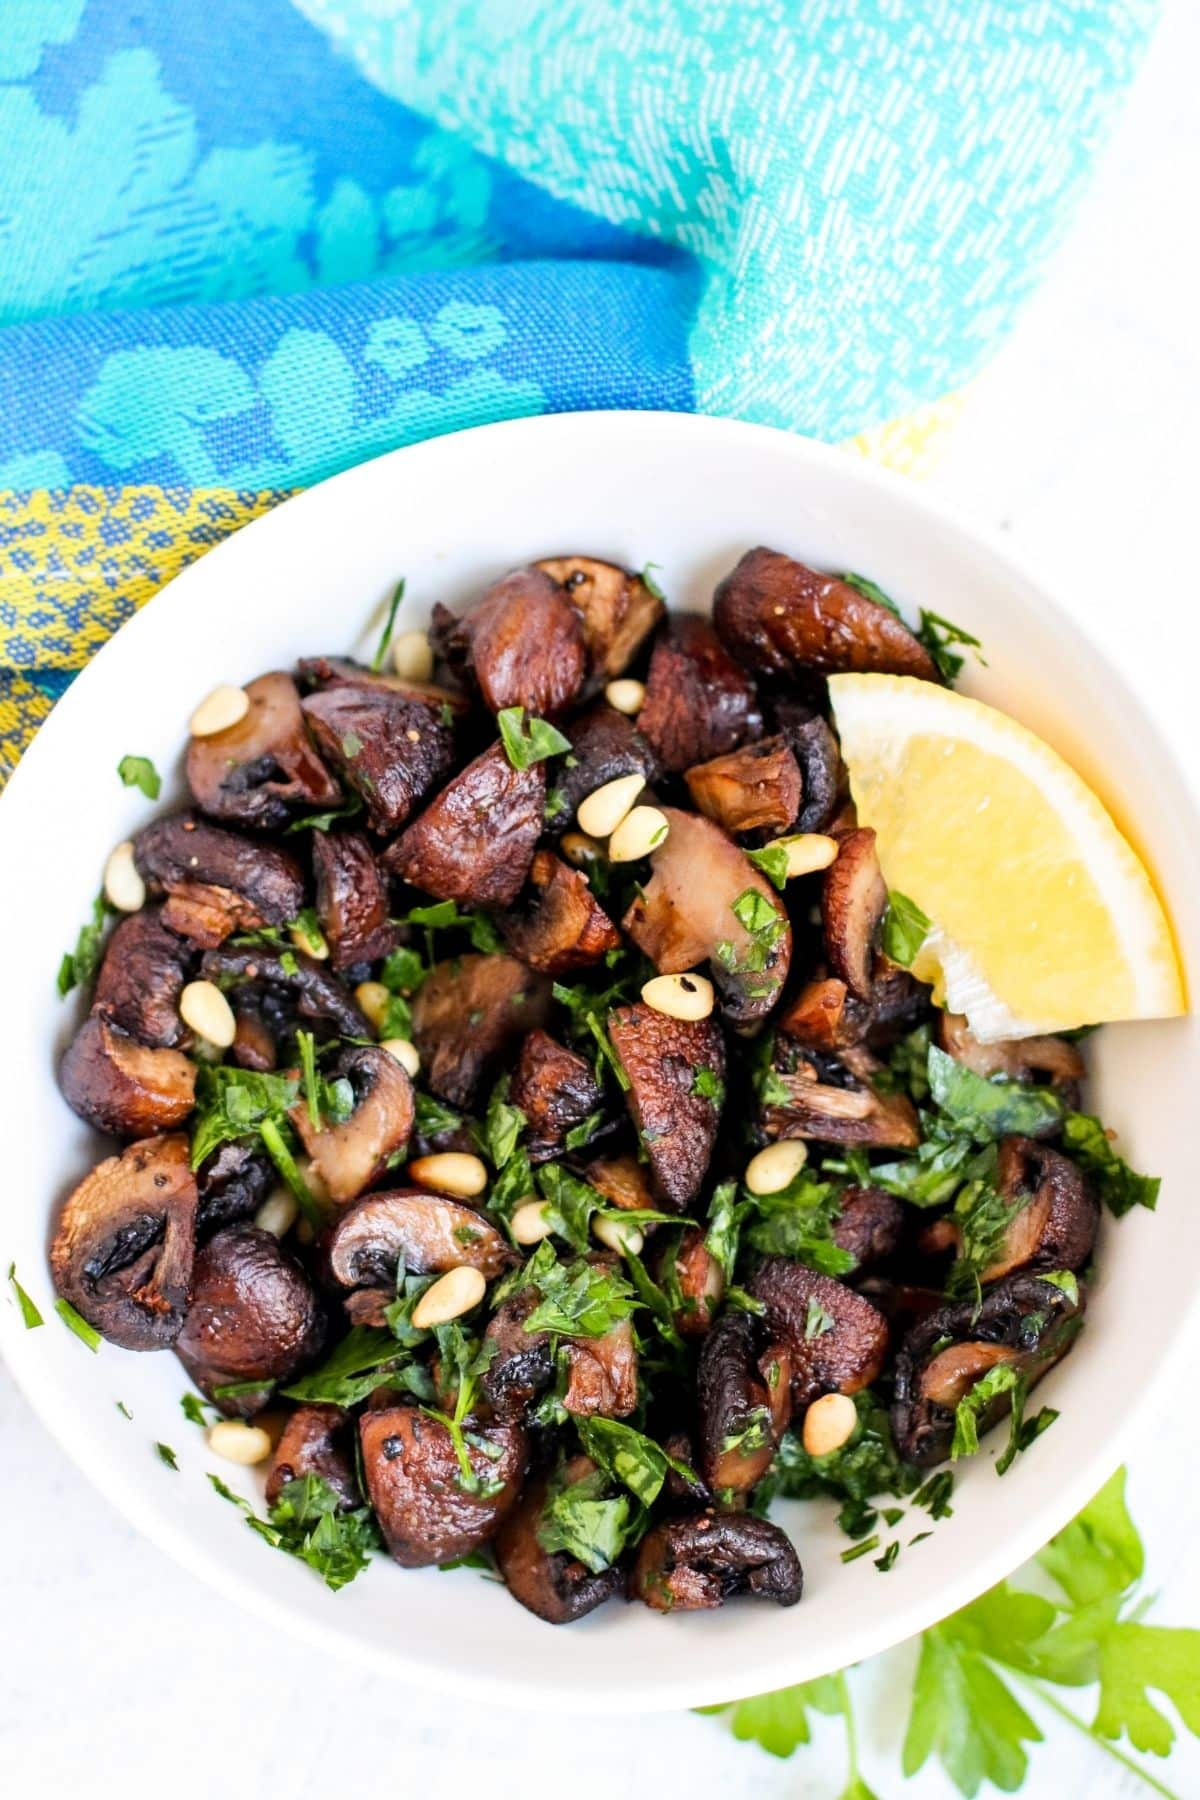 Bowl of roasted baby bella mushrooms topped with pine nuts and chopped parsley